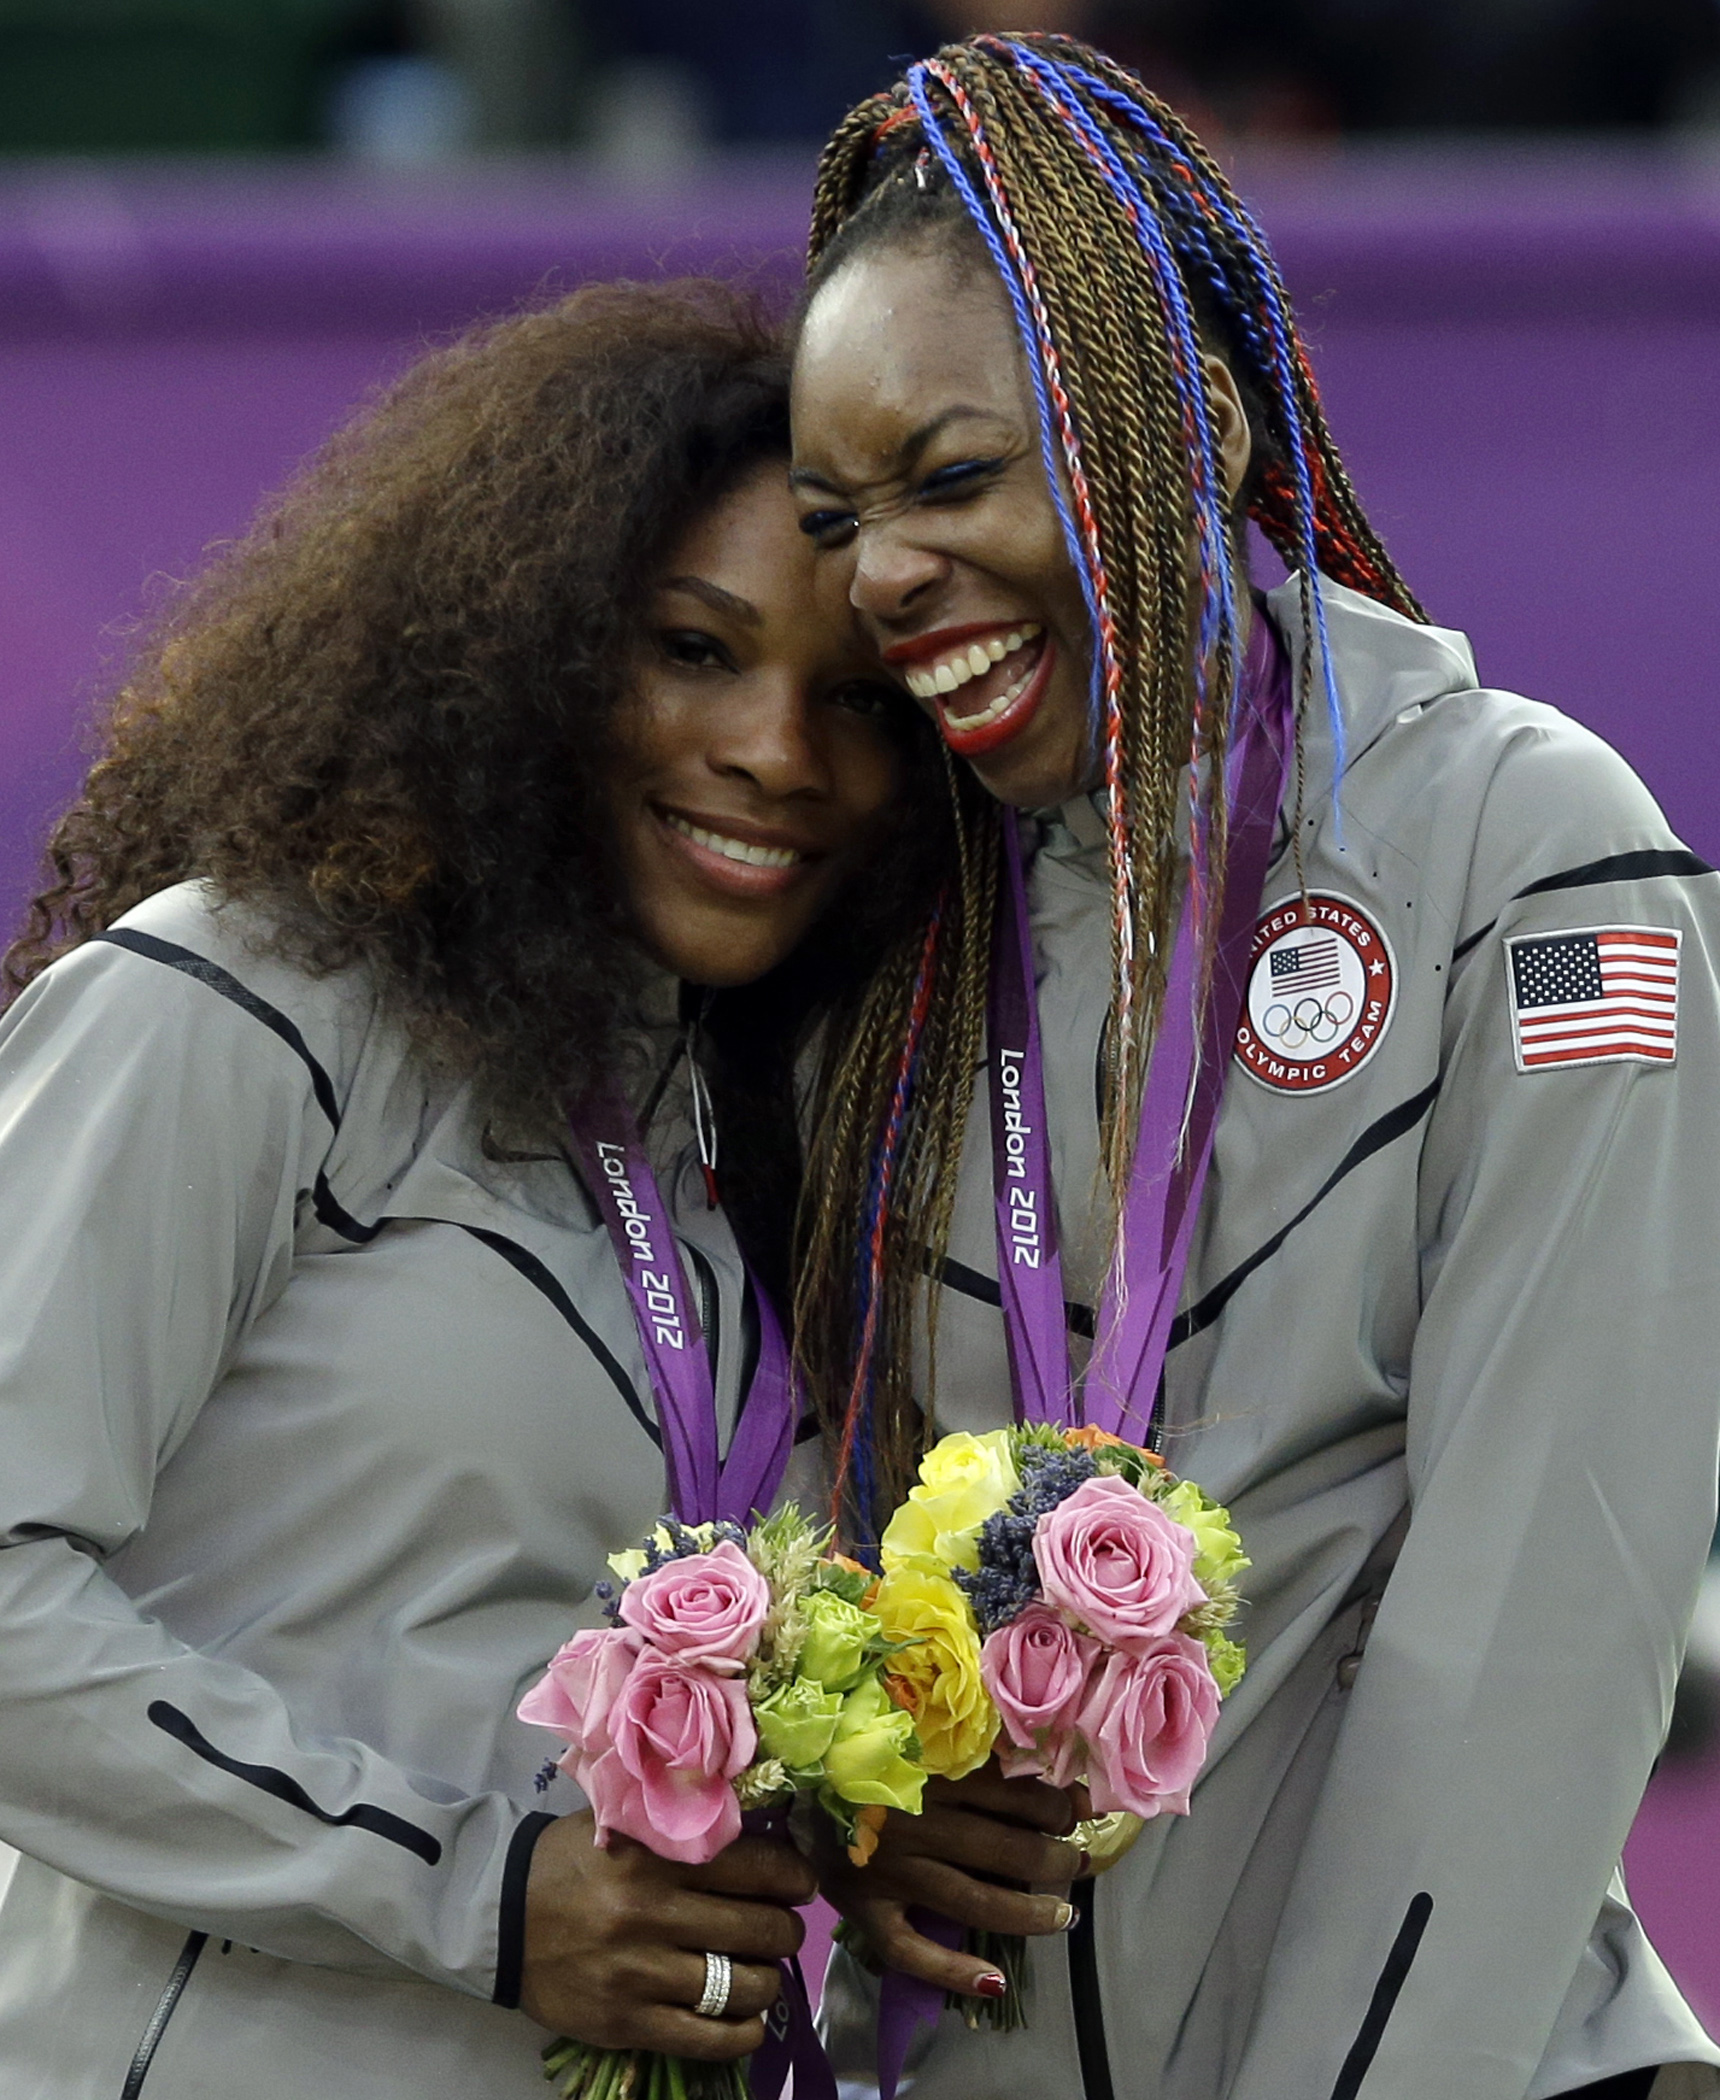 FILE -- In this file photo, taken on Aug. 5, 2012, at the London Summer Olympics, Serena Williams, left, and Venus Williams of the United States celebrate on podium after receiving their gold medals in women's doubles. The winningest team in Olympic tenni